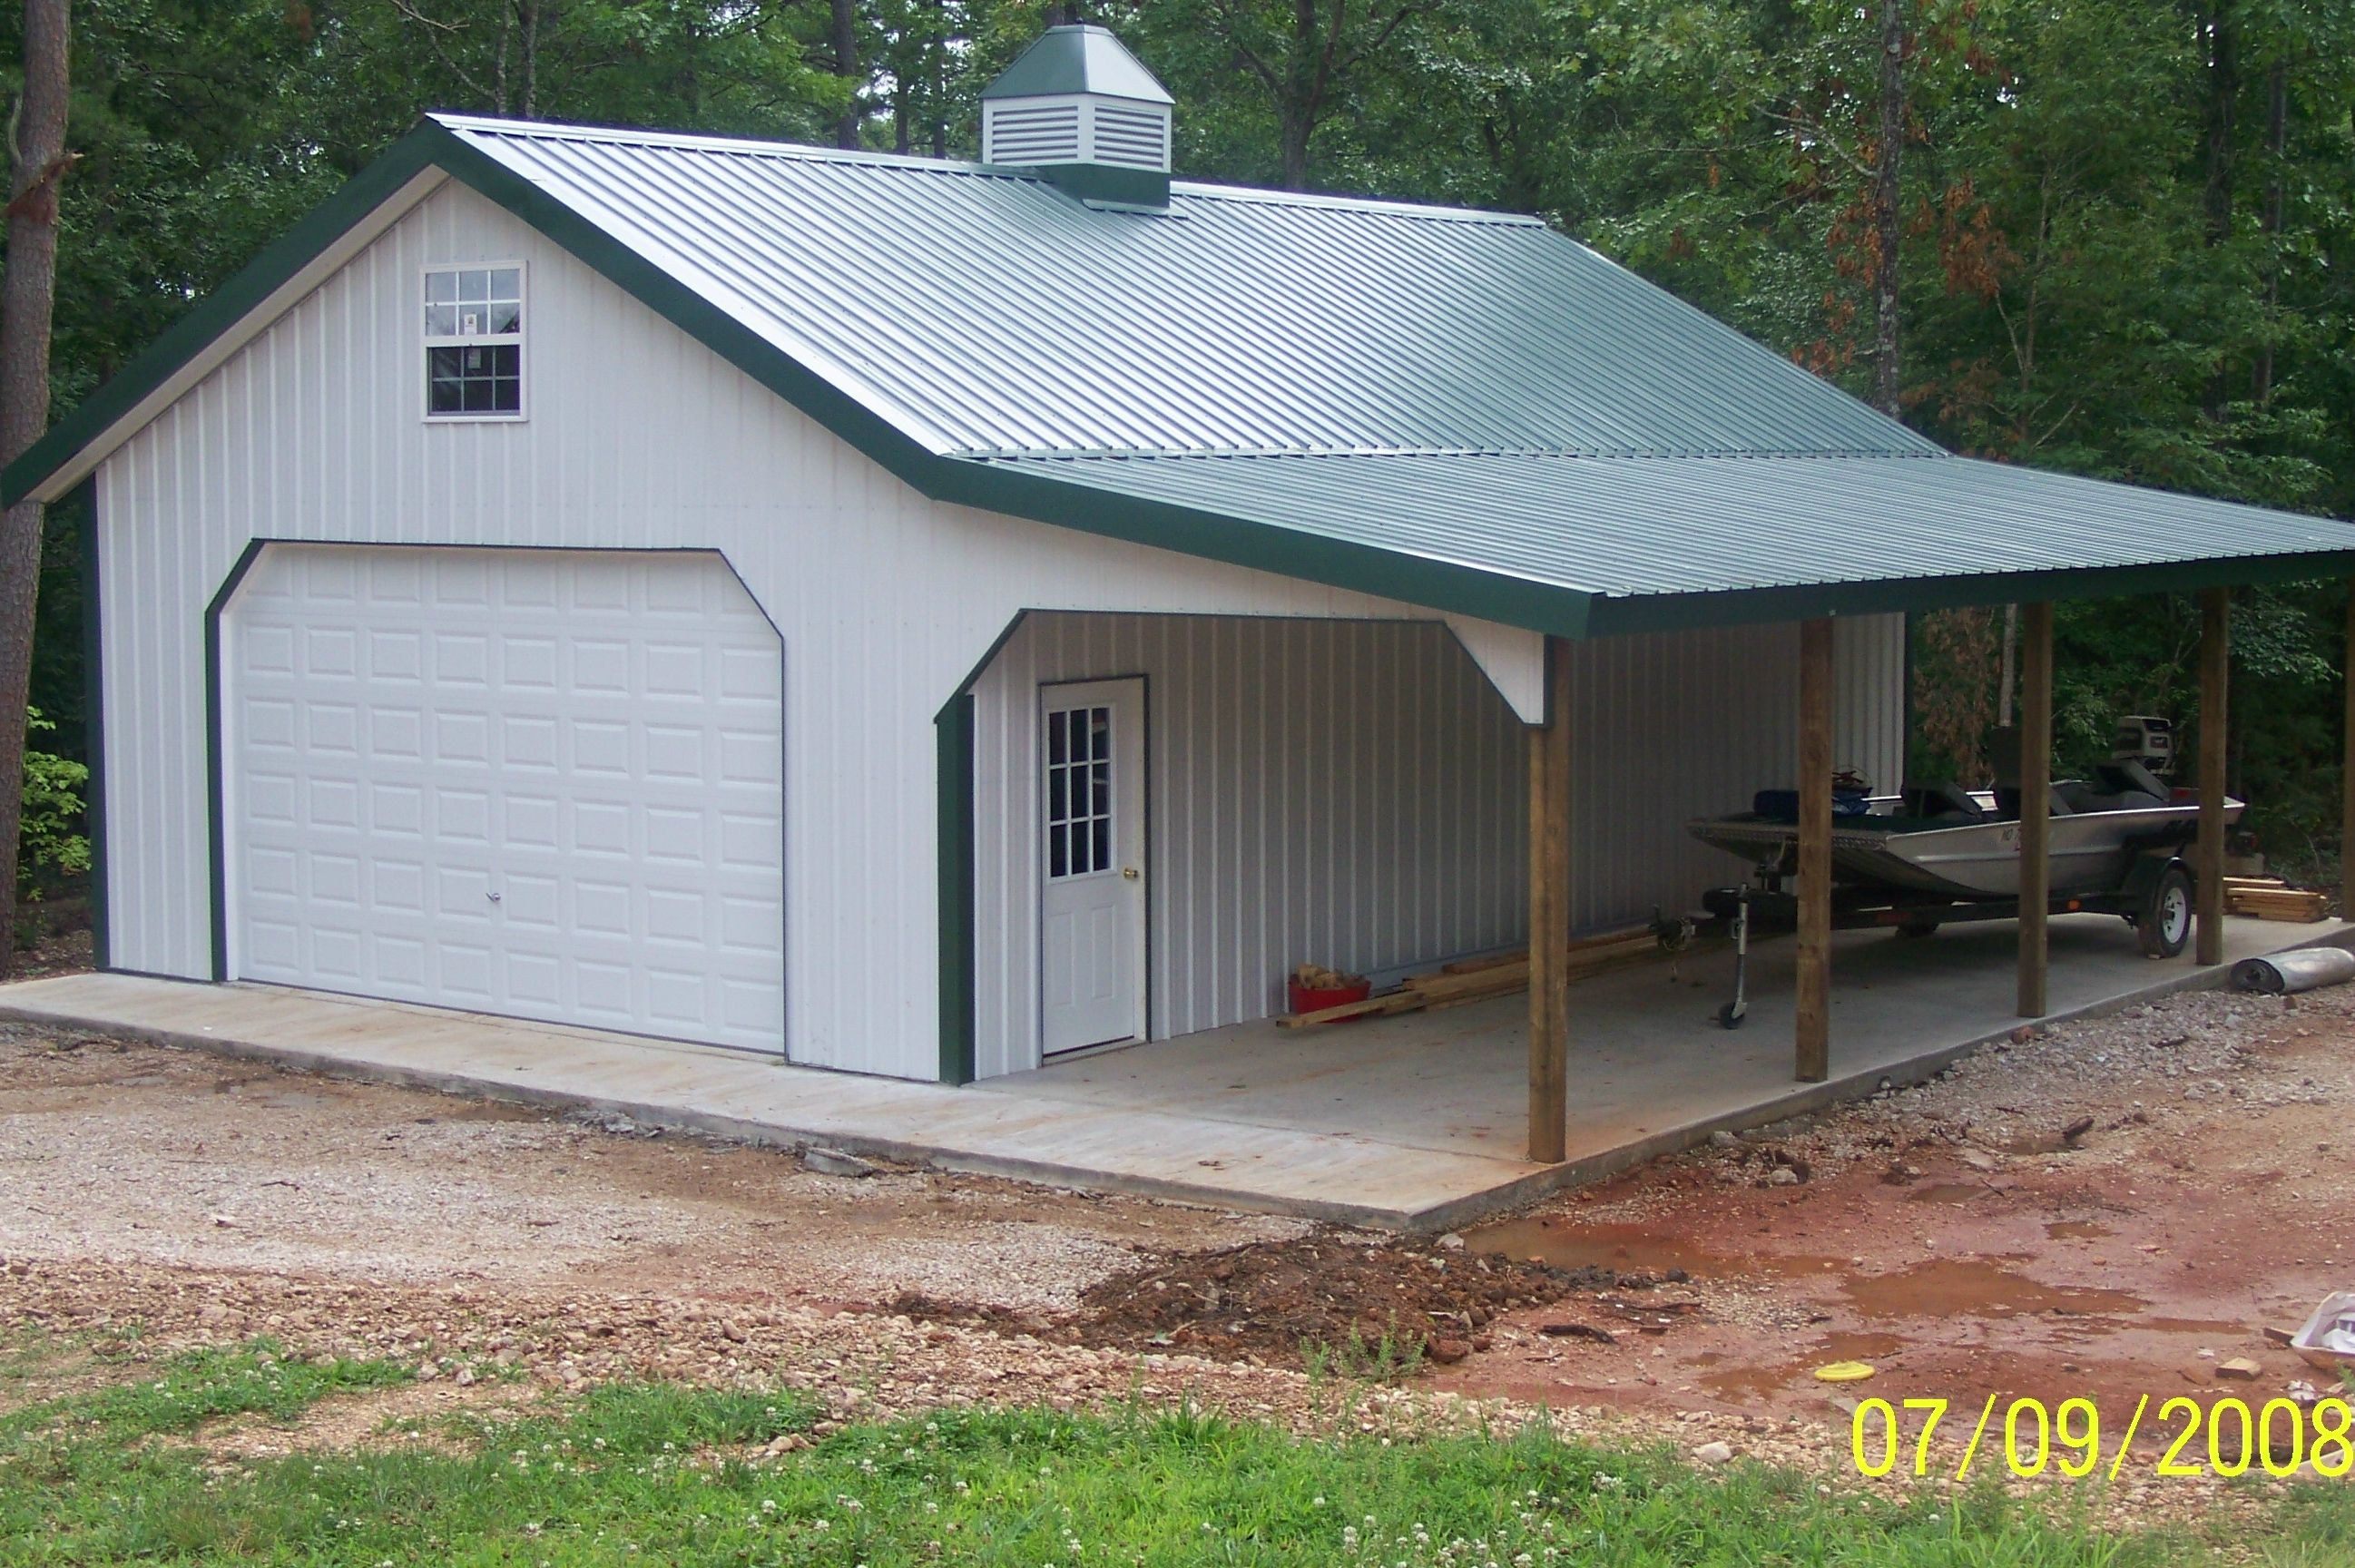 25 best pole barn garage ideas on pinterest pole barn designs 25 best pole barn garage ideas on pinterest pole barn designs pole barns and barn garage